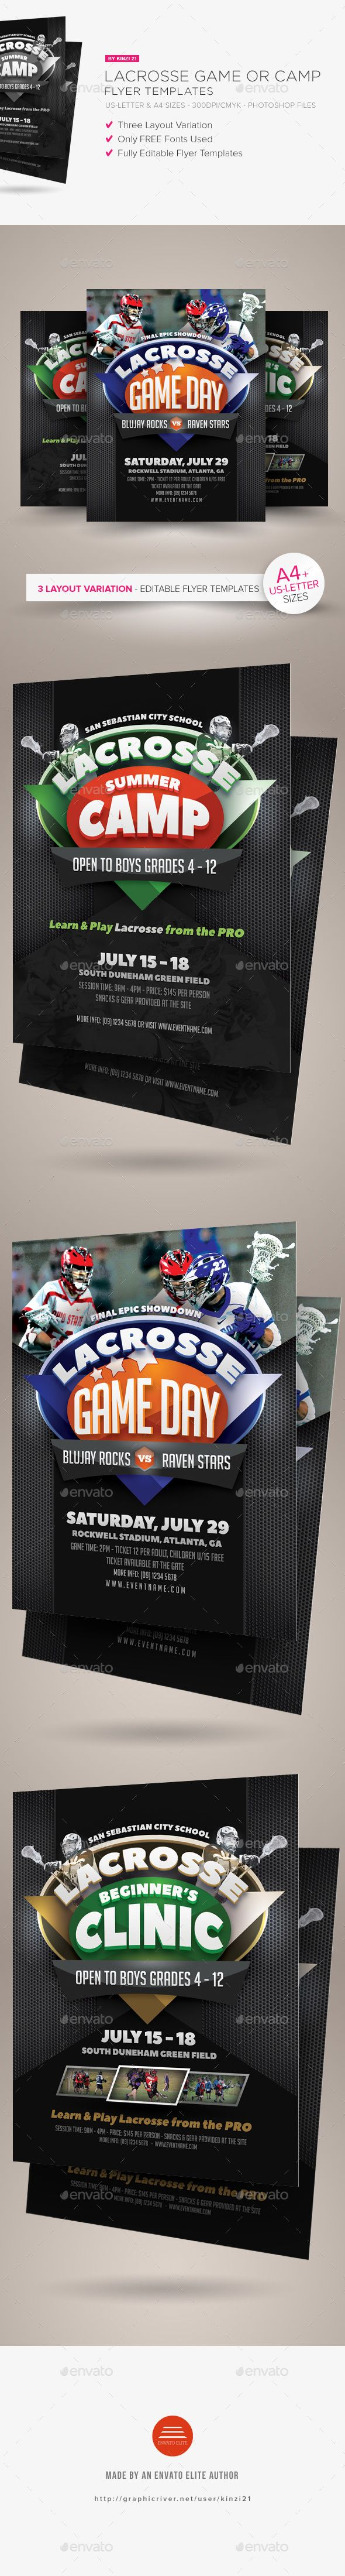 Lacrosse Game Or Camp Flyer Templates  Flyer Template Lacrosse